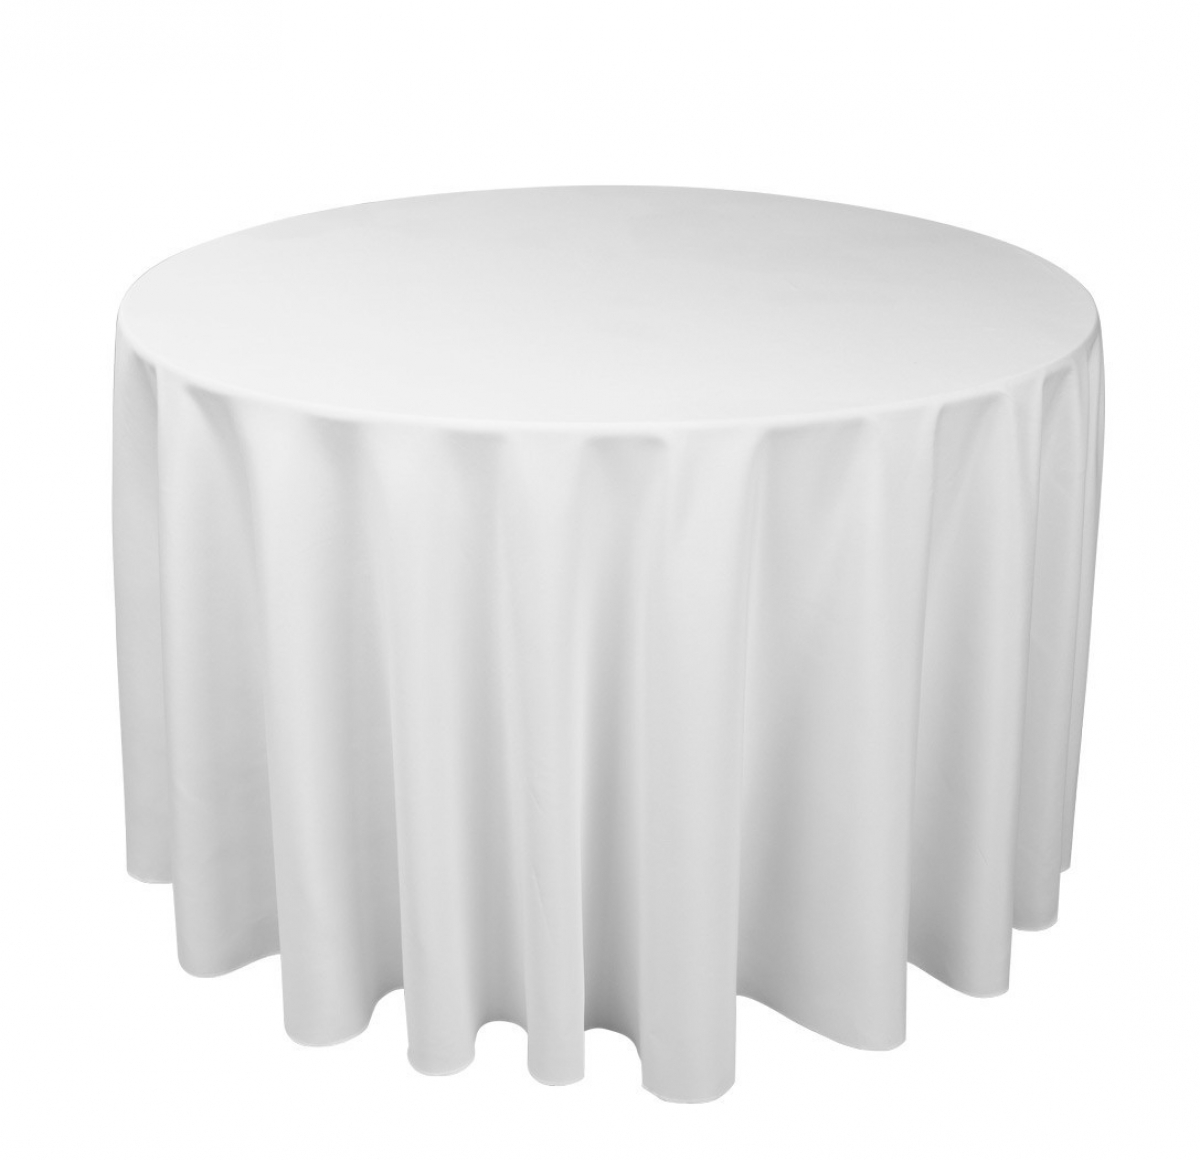 120 round tablecloth rtc001 round 120 surprising cheap for 120 round white table linens